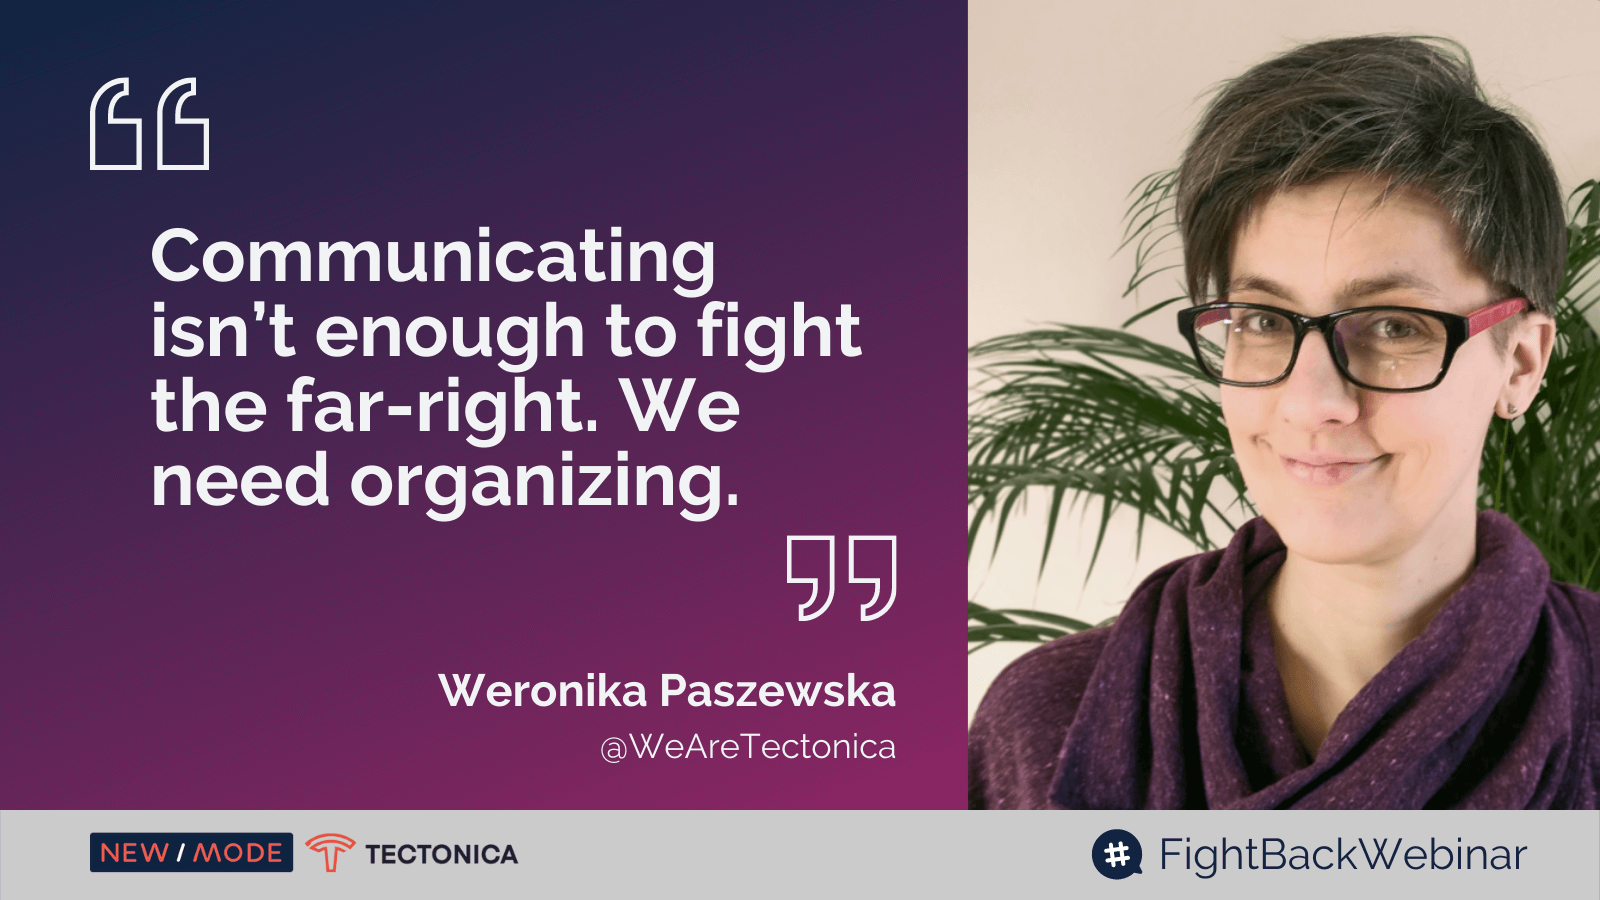 Fighting the Far-Right Live Tweet Weronika Quote